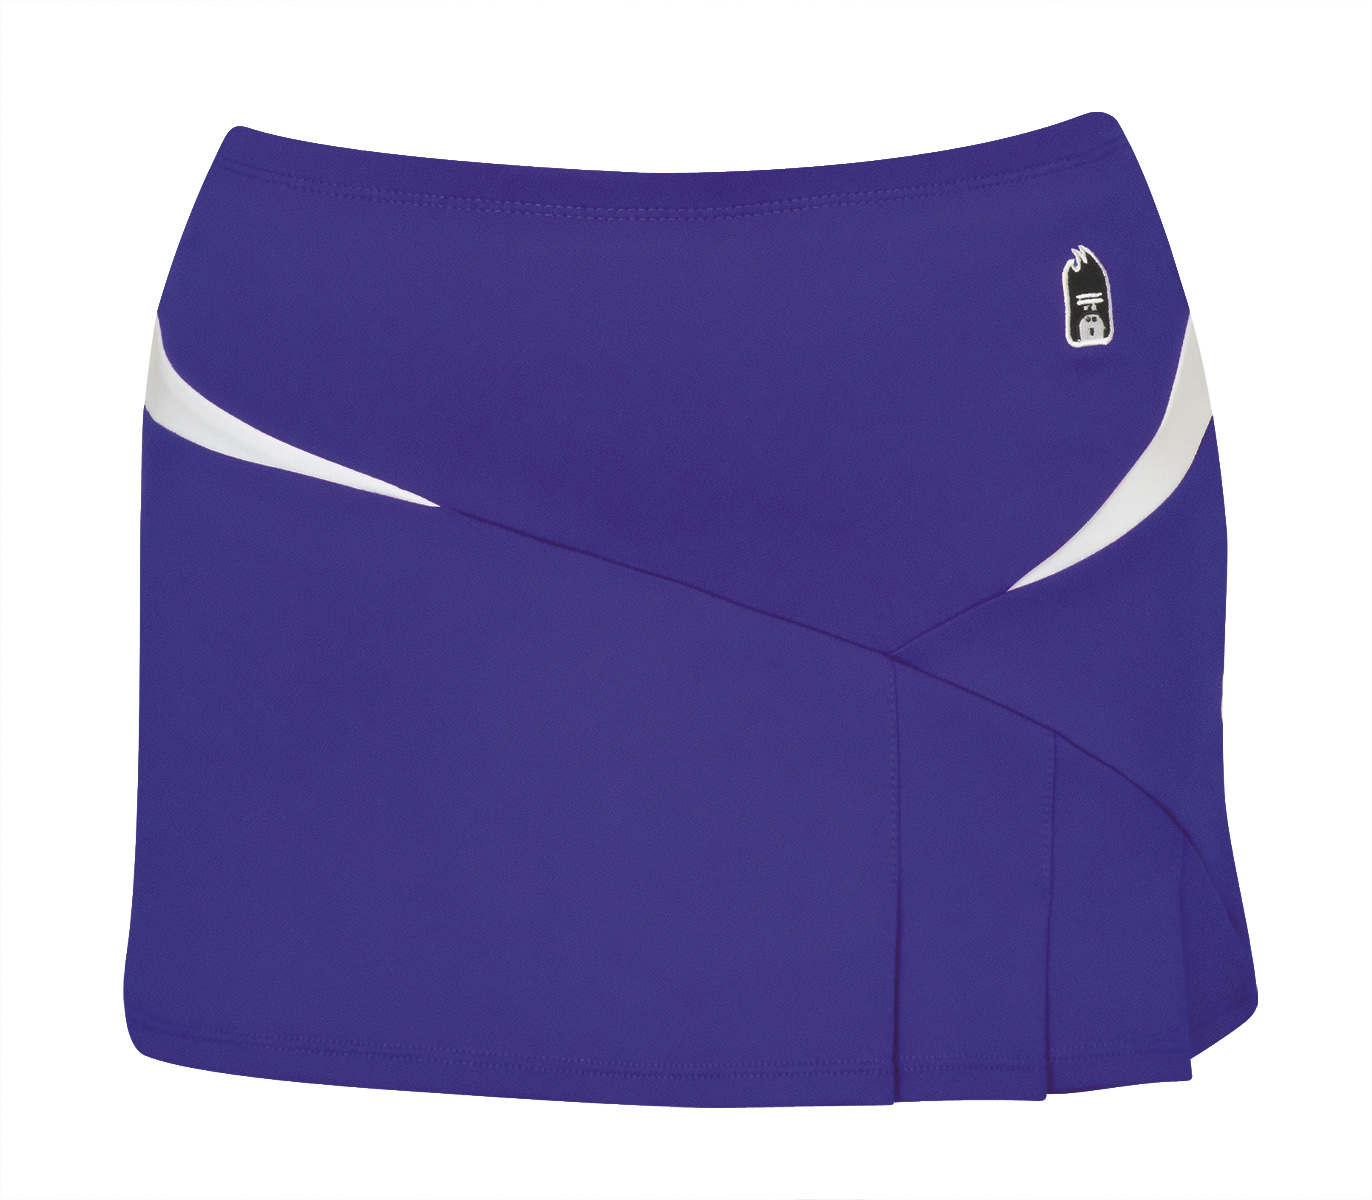 DUC Compete Women's Skirt w/ Power Tights (Purple)